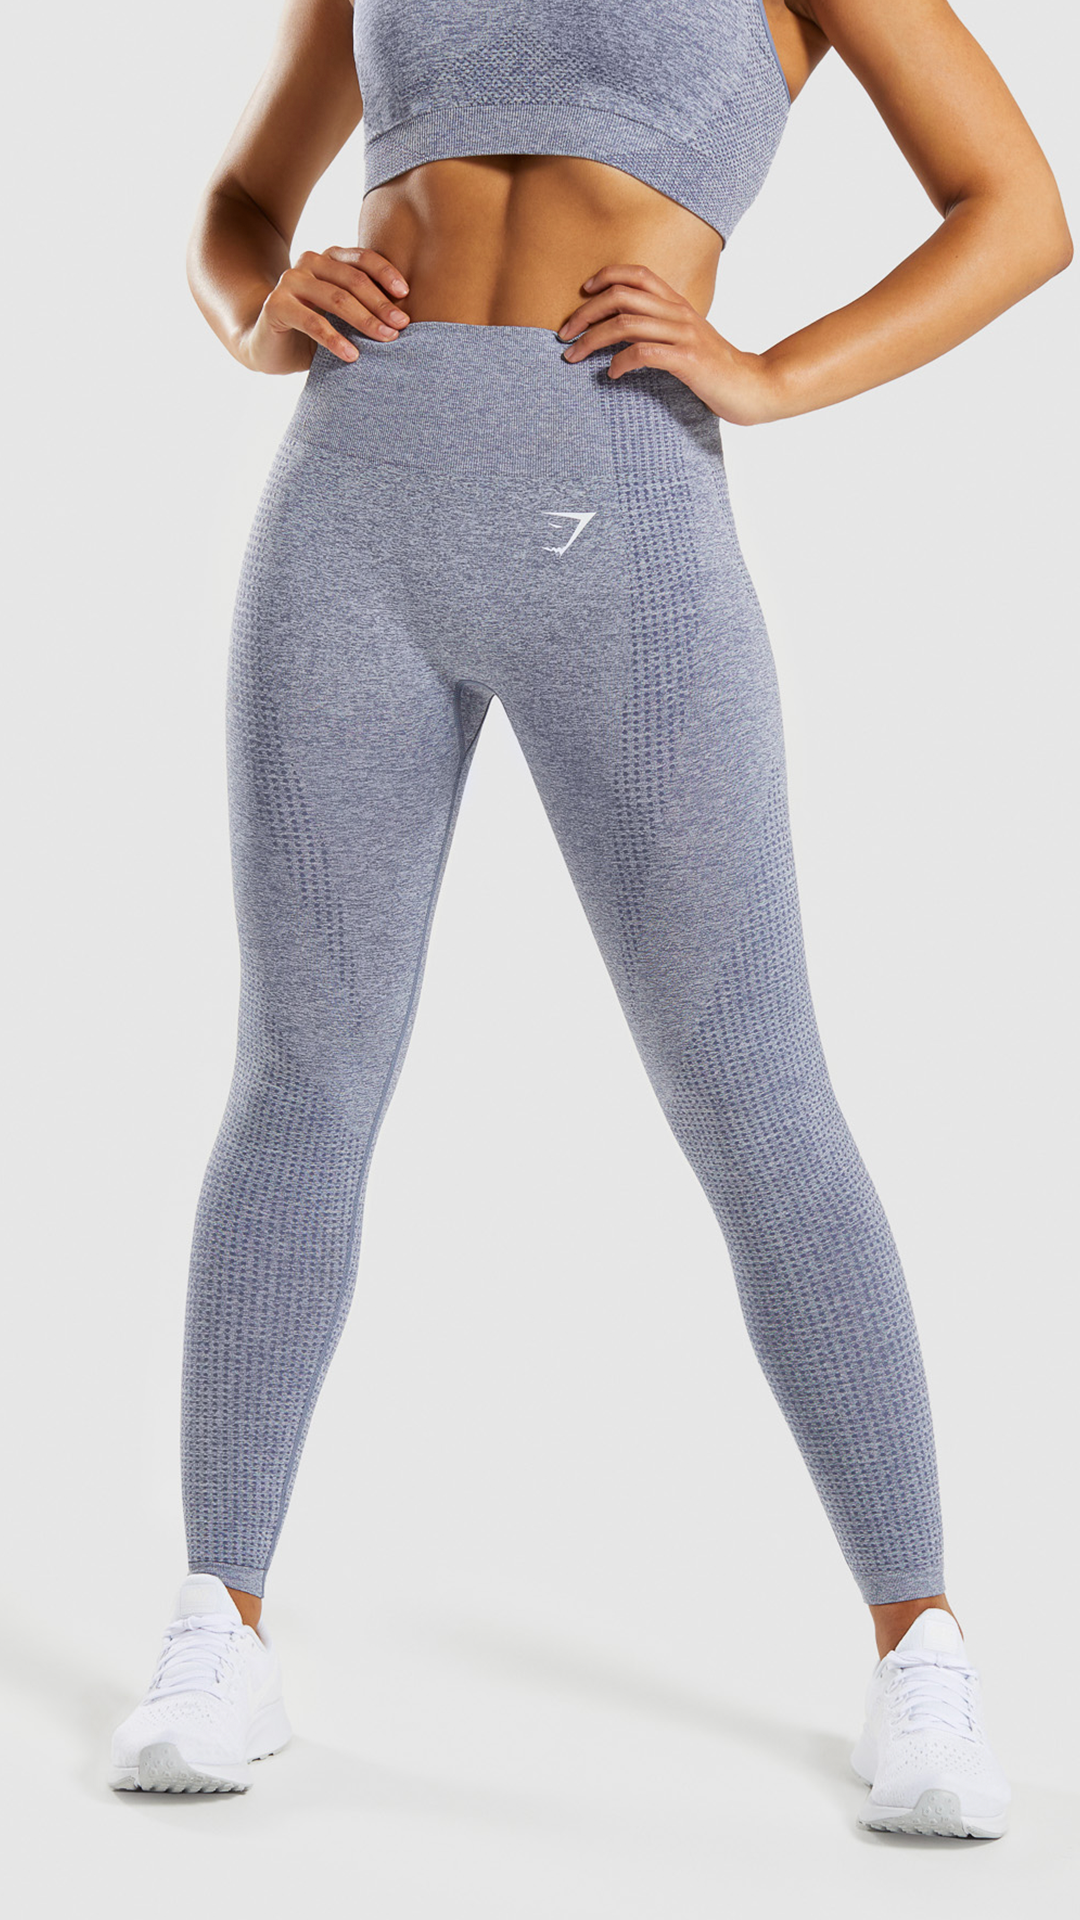 559b6127bf245 Gymshark Vital Seamless Leggings - Steel Blue Marl in 2019 | Fitness ...